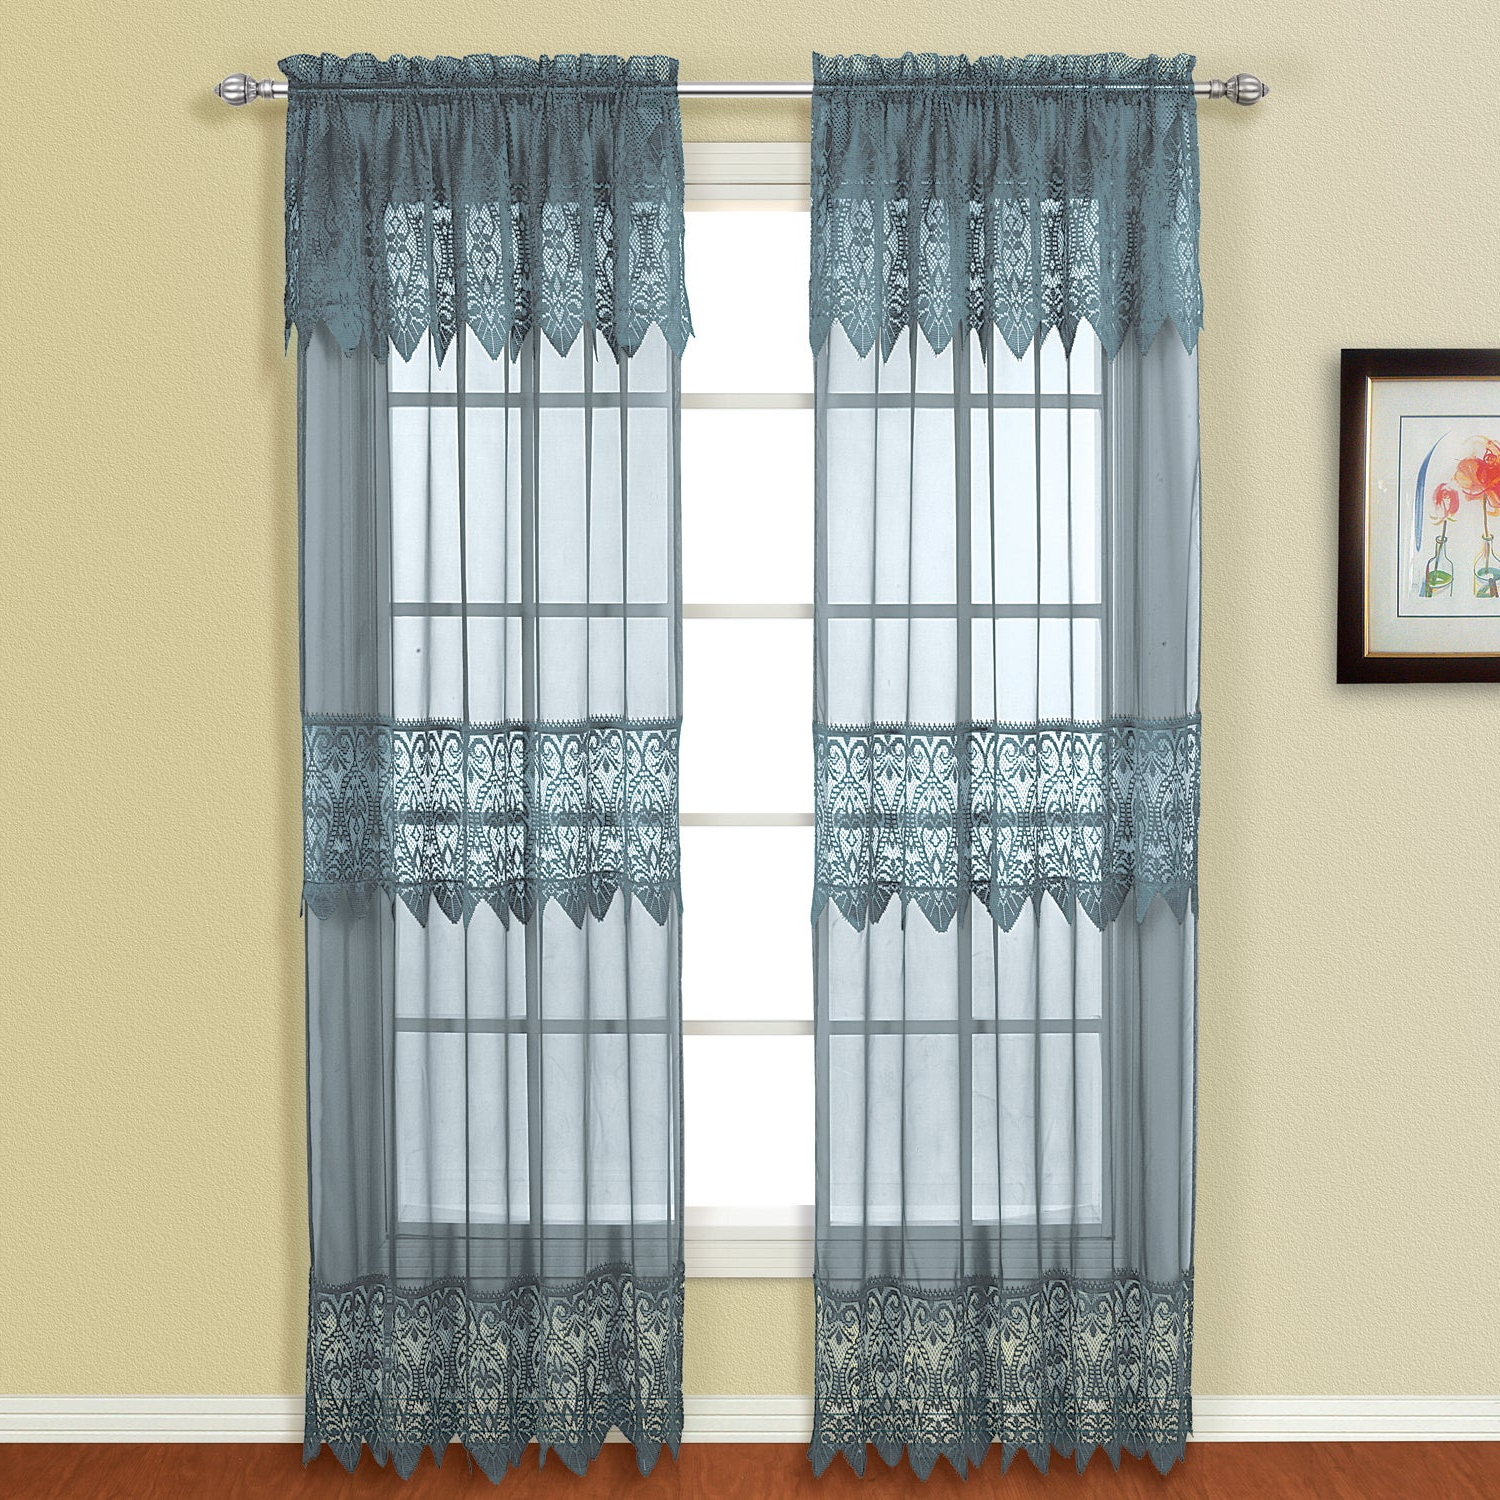 Details About Luxury Collection Valerie Semi Sheer Curtain Panel Pair Throughout Preferred Luxury Collection Venetian Sheer Curtain Panel Pairs (View 5 of 20)